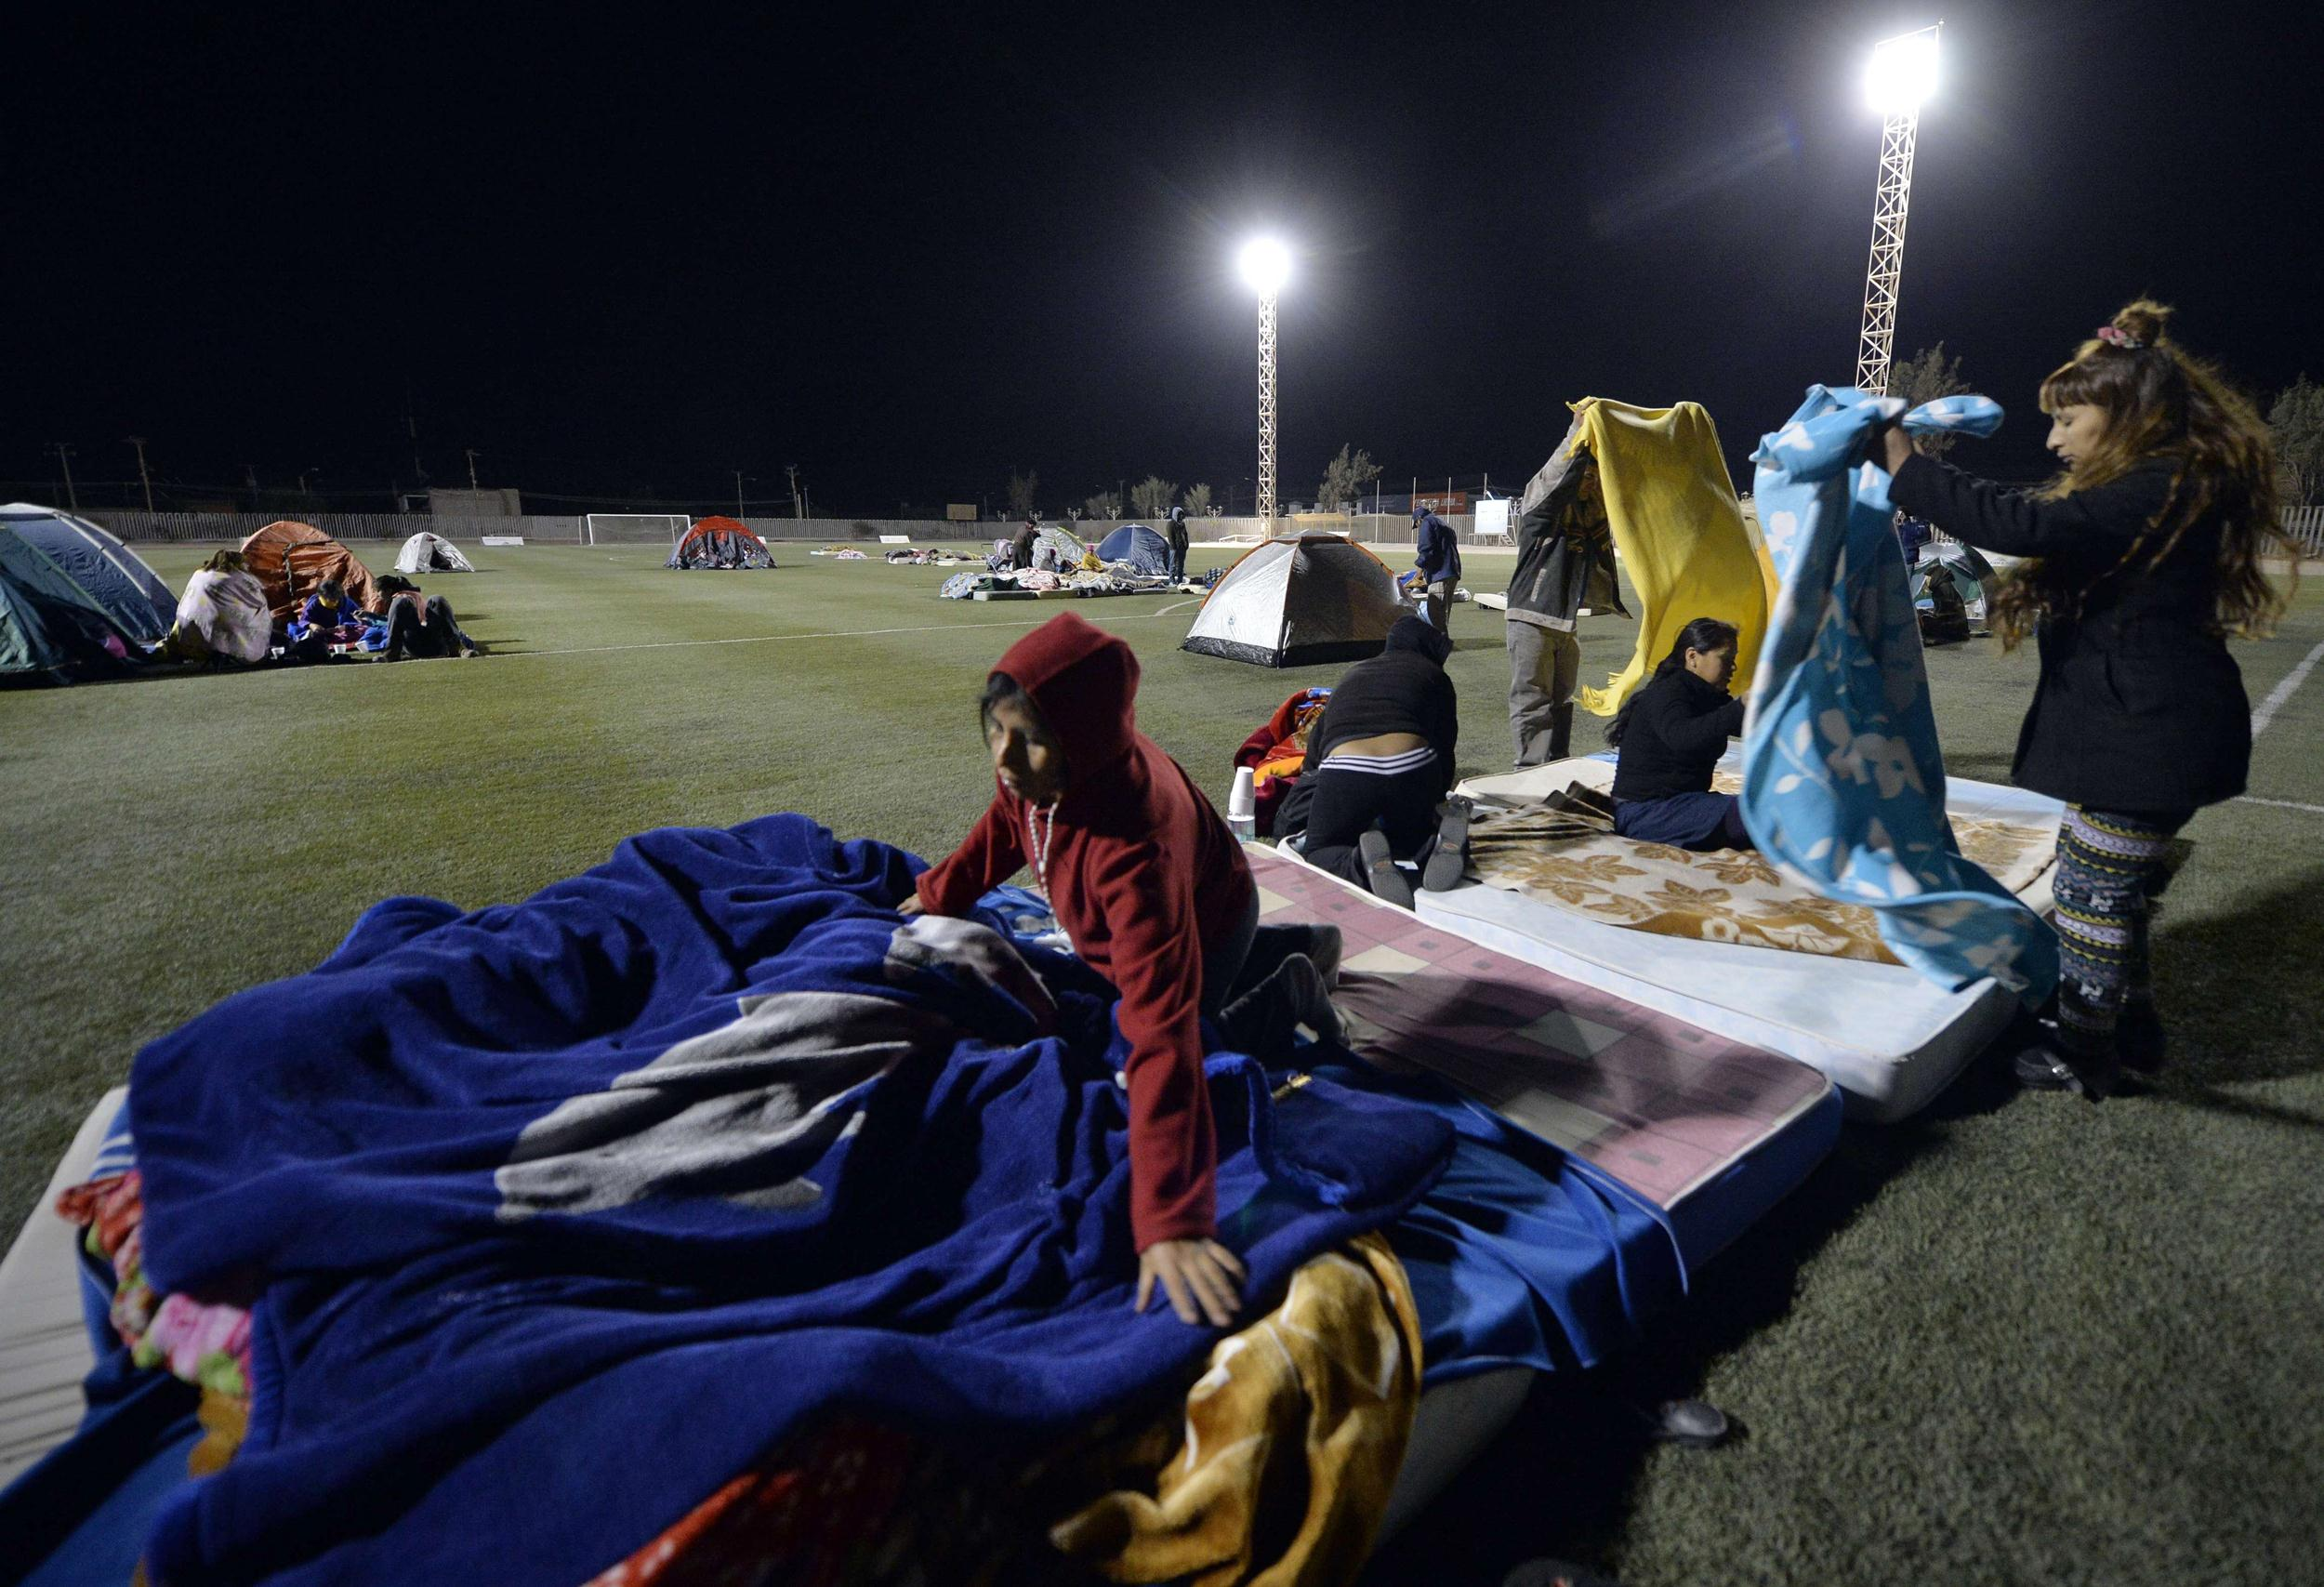 Image: People from the town of Pozo al Monte, close to the city of Iquique, camp out on a stadium field